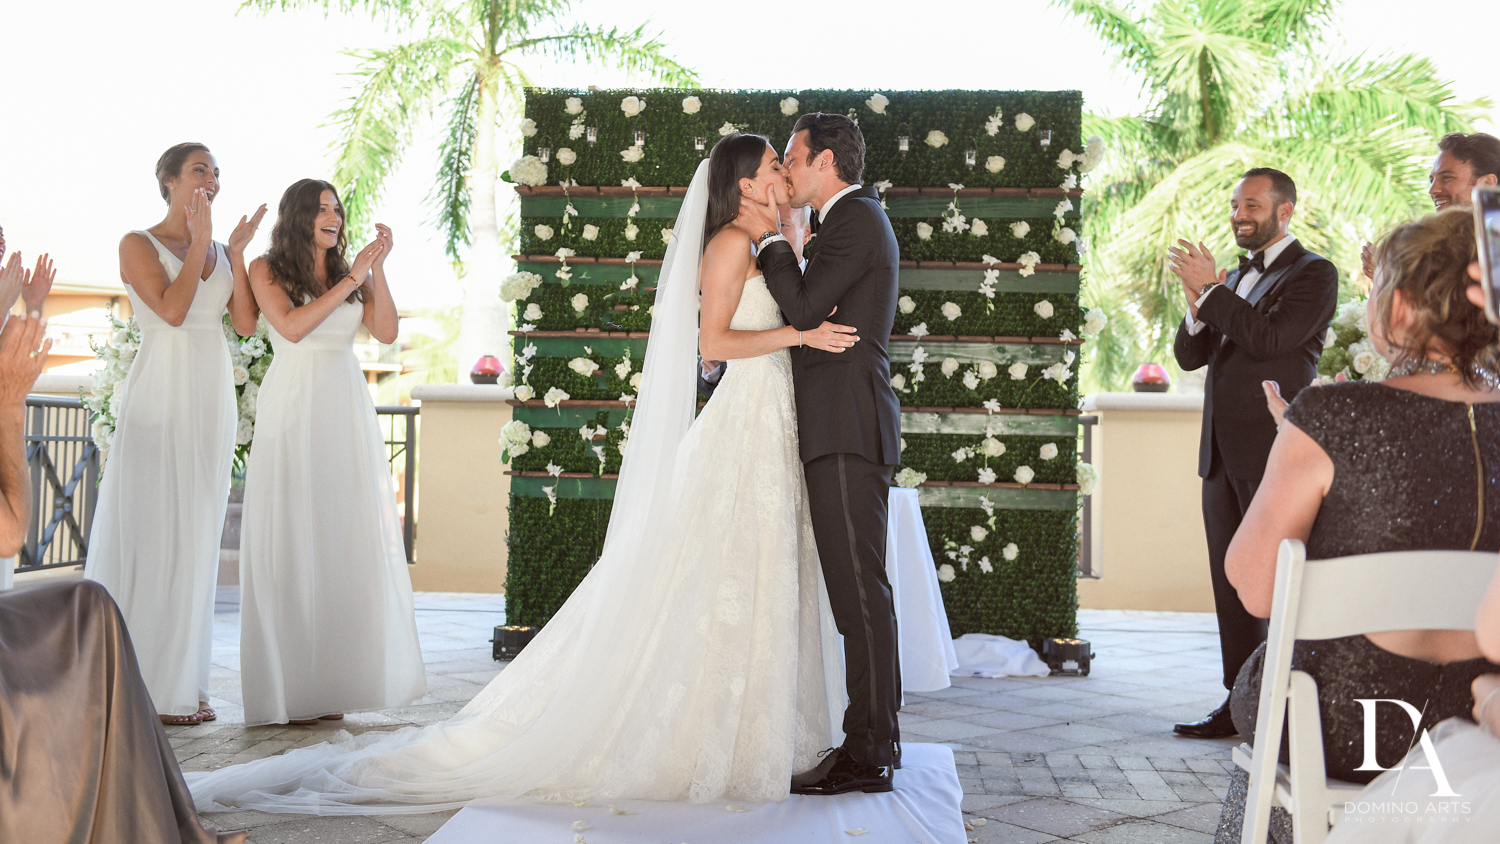 ceremony kiss at Stunning Golf Course Wedding at PGA National Palm Beach by Domino Arts Photography